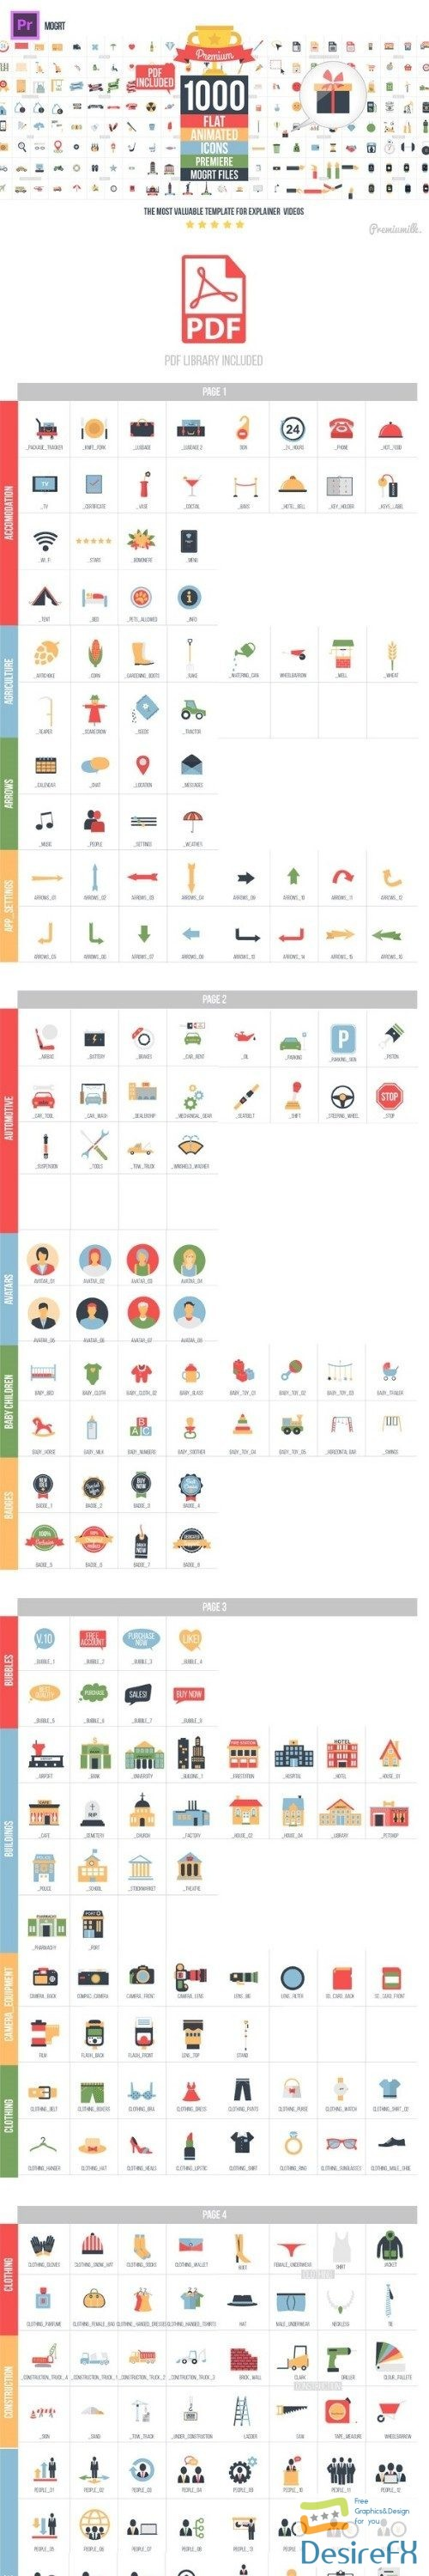 premiere-pro - Videohive Flat Animated Icons Library Essential Graphics | Mogrt 22003103